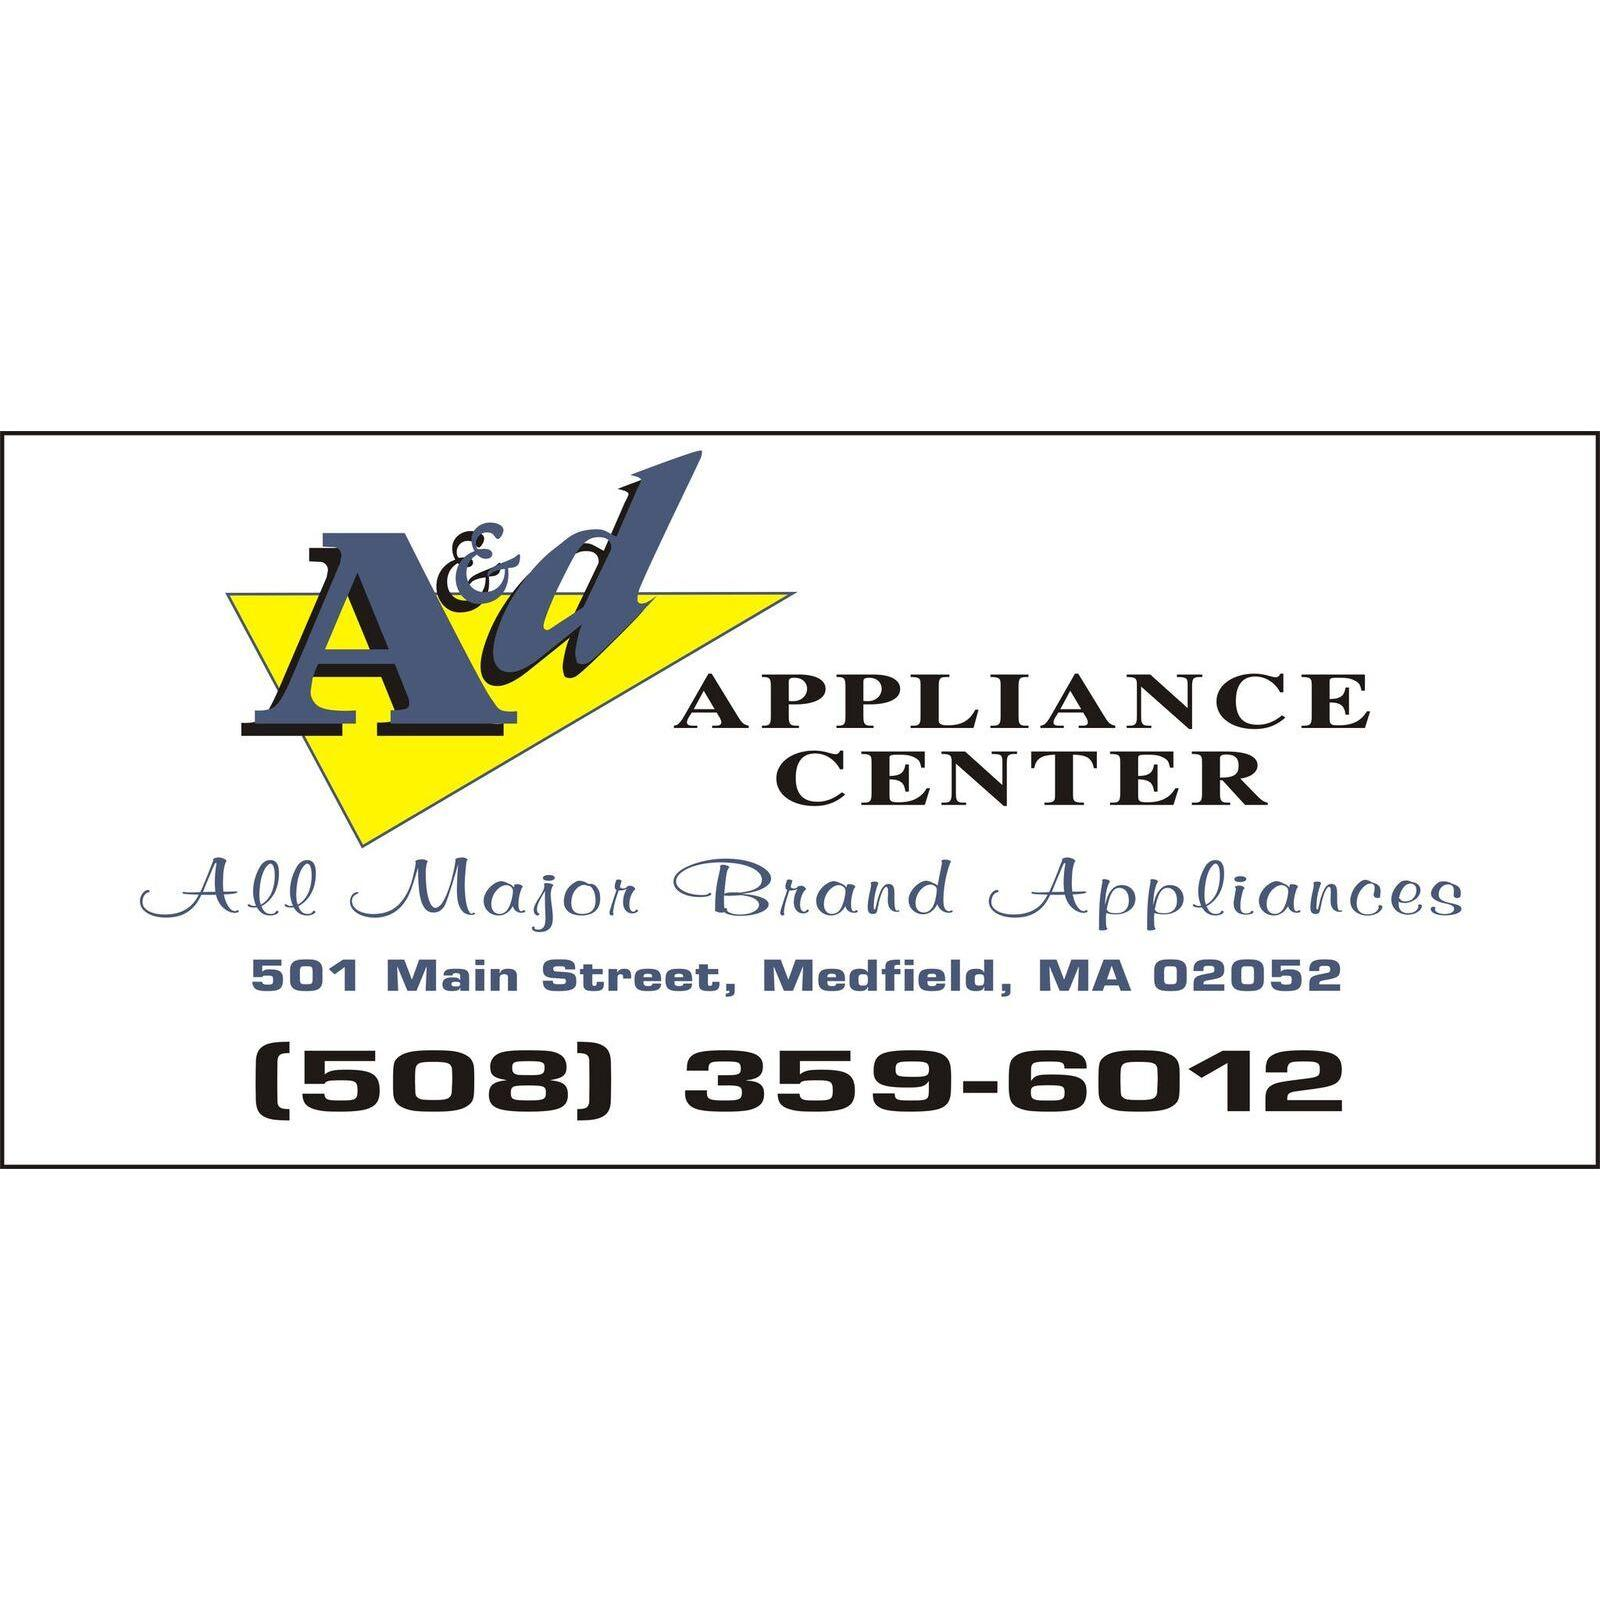 A & D Appliance Center - Medfield, MA - Appliance Stores